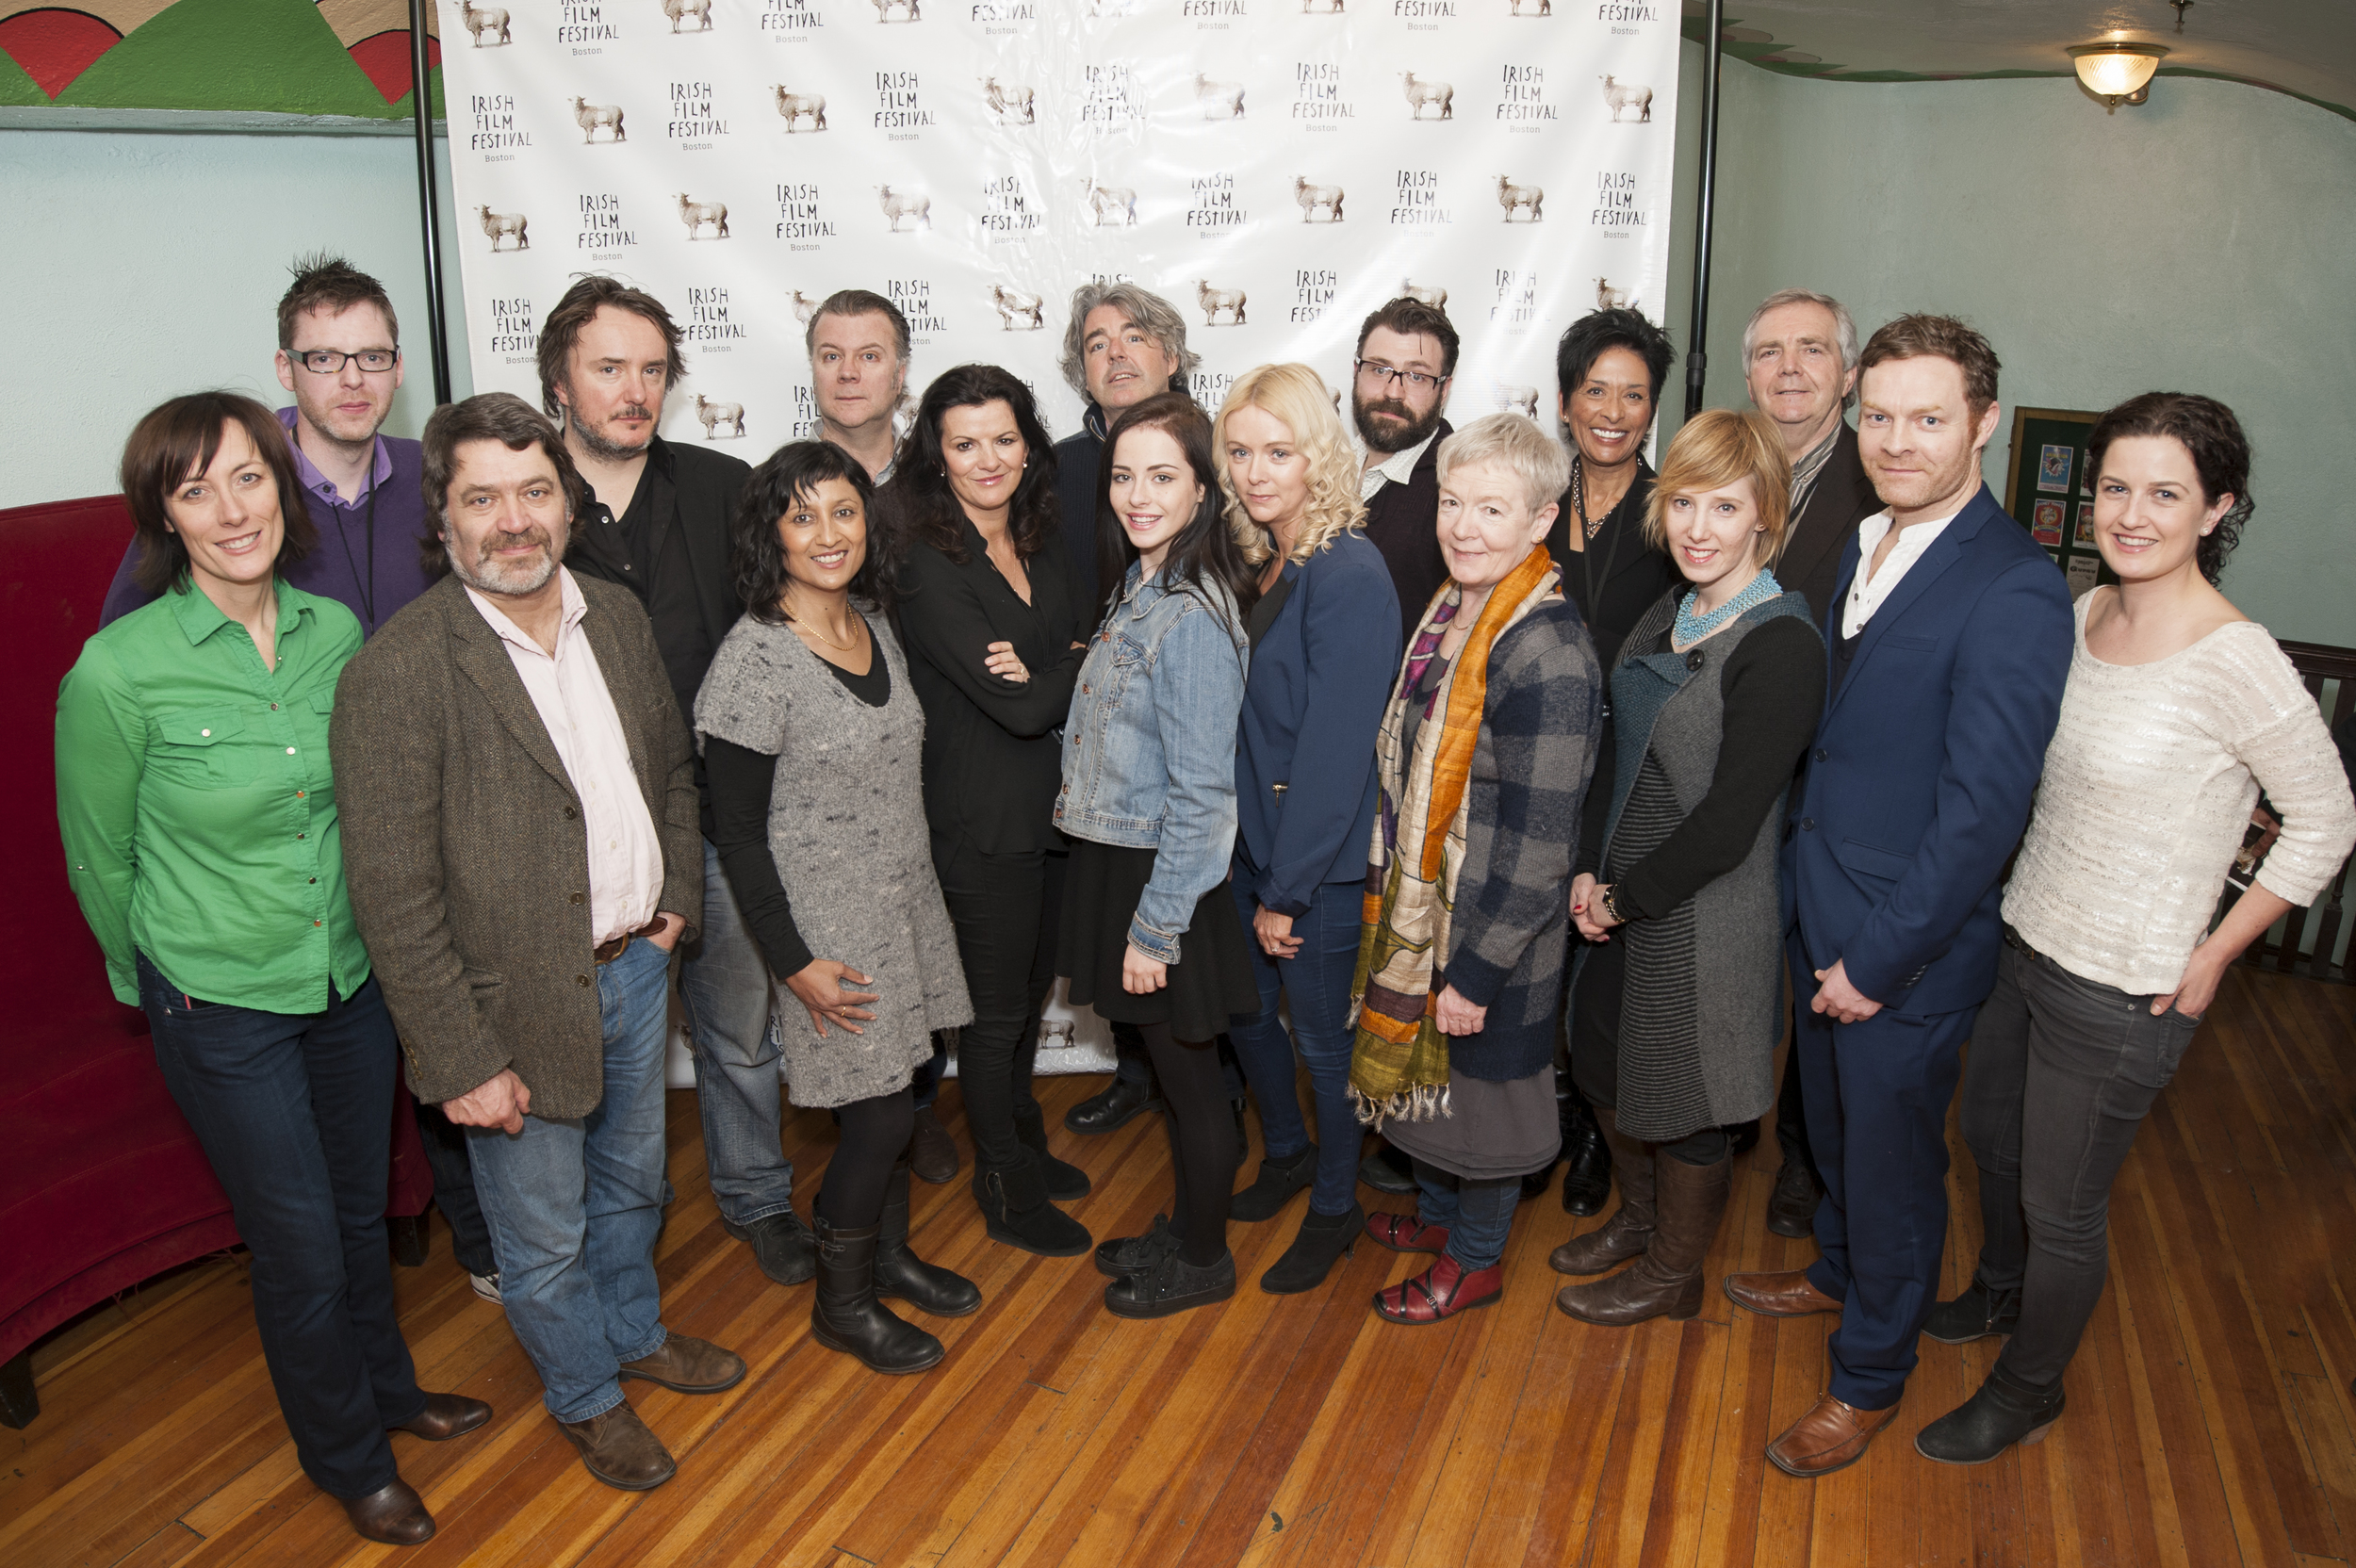 Thanks to all of the film makers, directors, producers and actors who made the 2014 film festival a huge success!